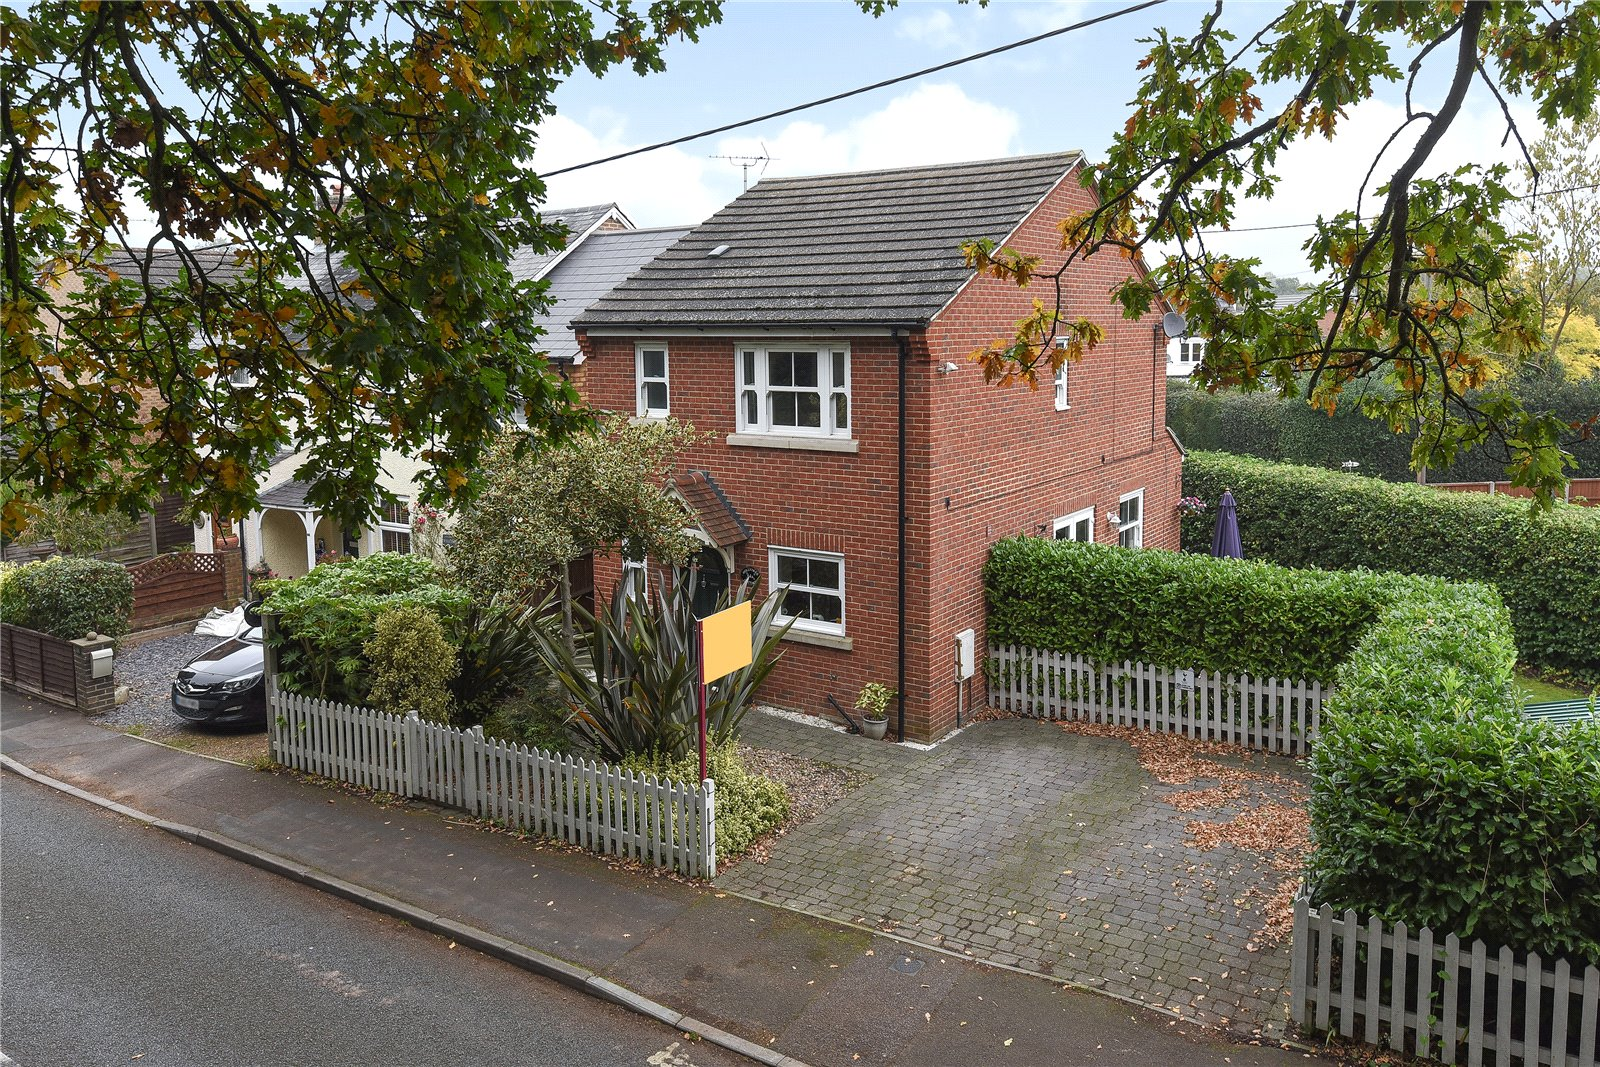 3 Bedrooms Detached House for sale in Minley Road, Farnborough, Hampshire, GU14